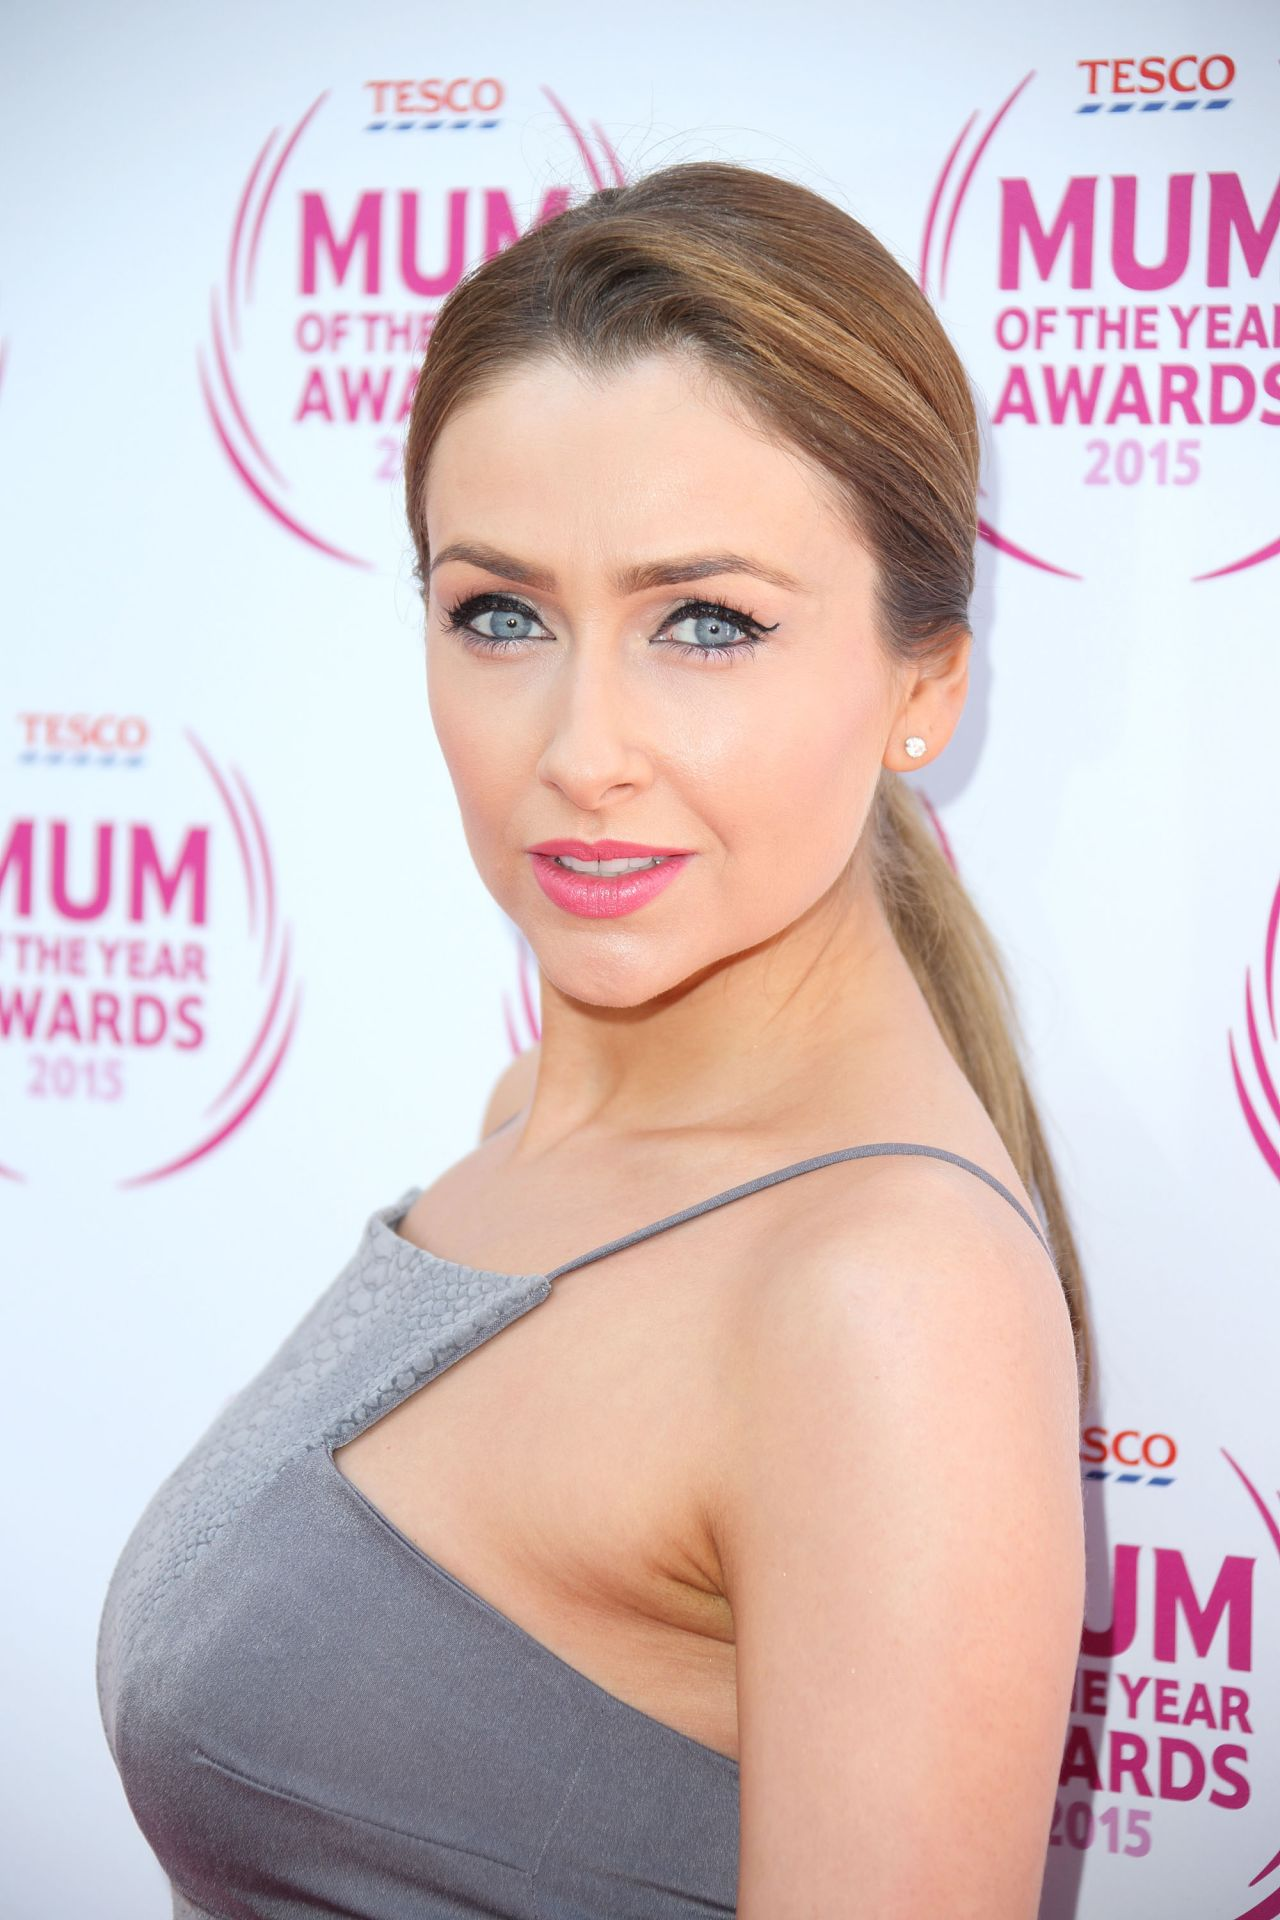 Gemma Merna - 2015 Tesco Mum Of The Year Awards in London